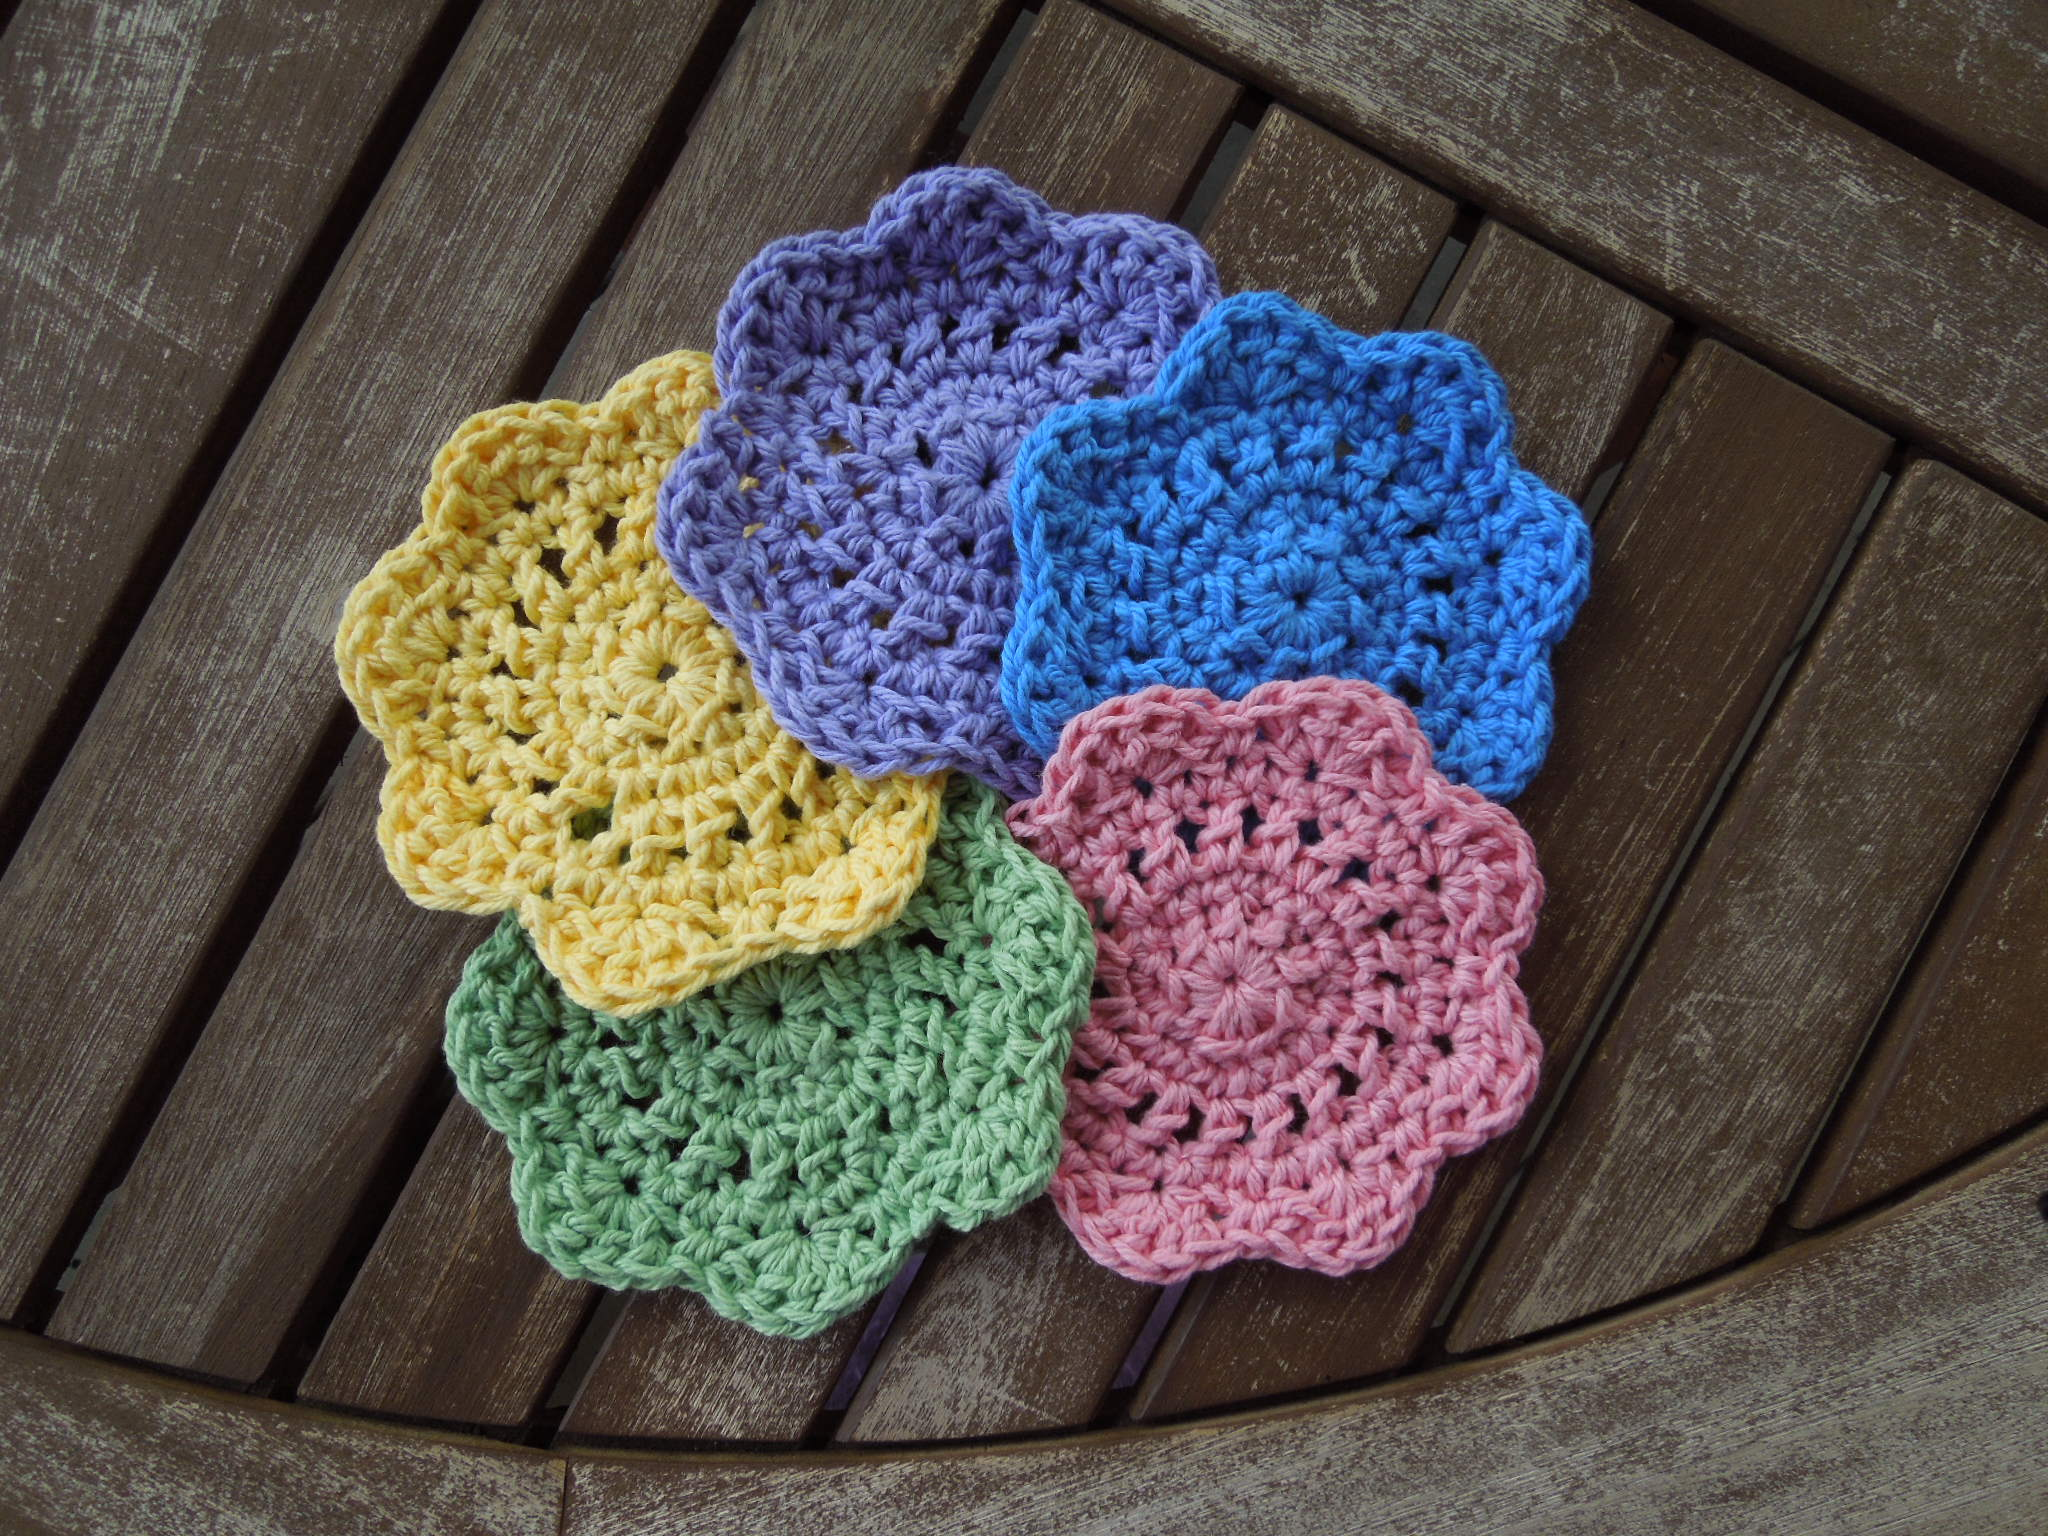 Use our quick crochet patterns to create a useful hostess gift, a cute baby gift or a thoughtful afghan for a new happy couple. We've got lots of quick crochet patterns that are easy to .